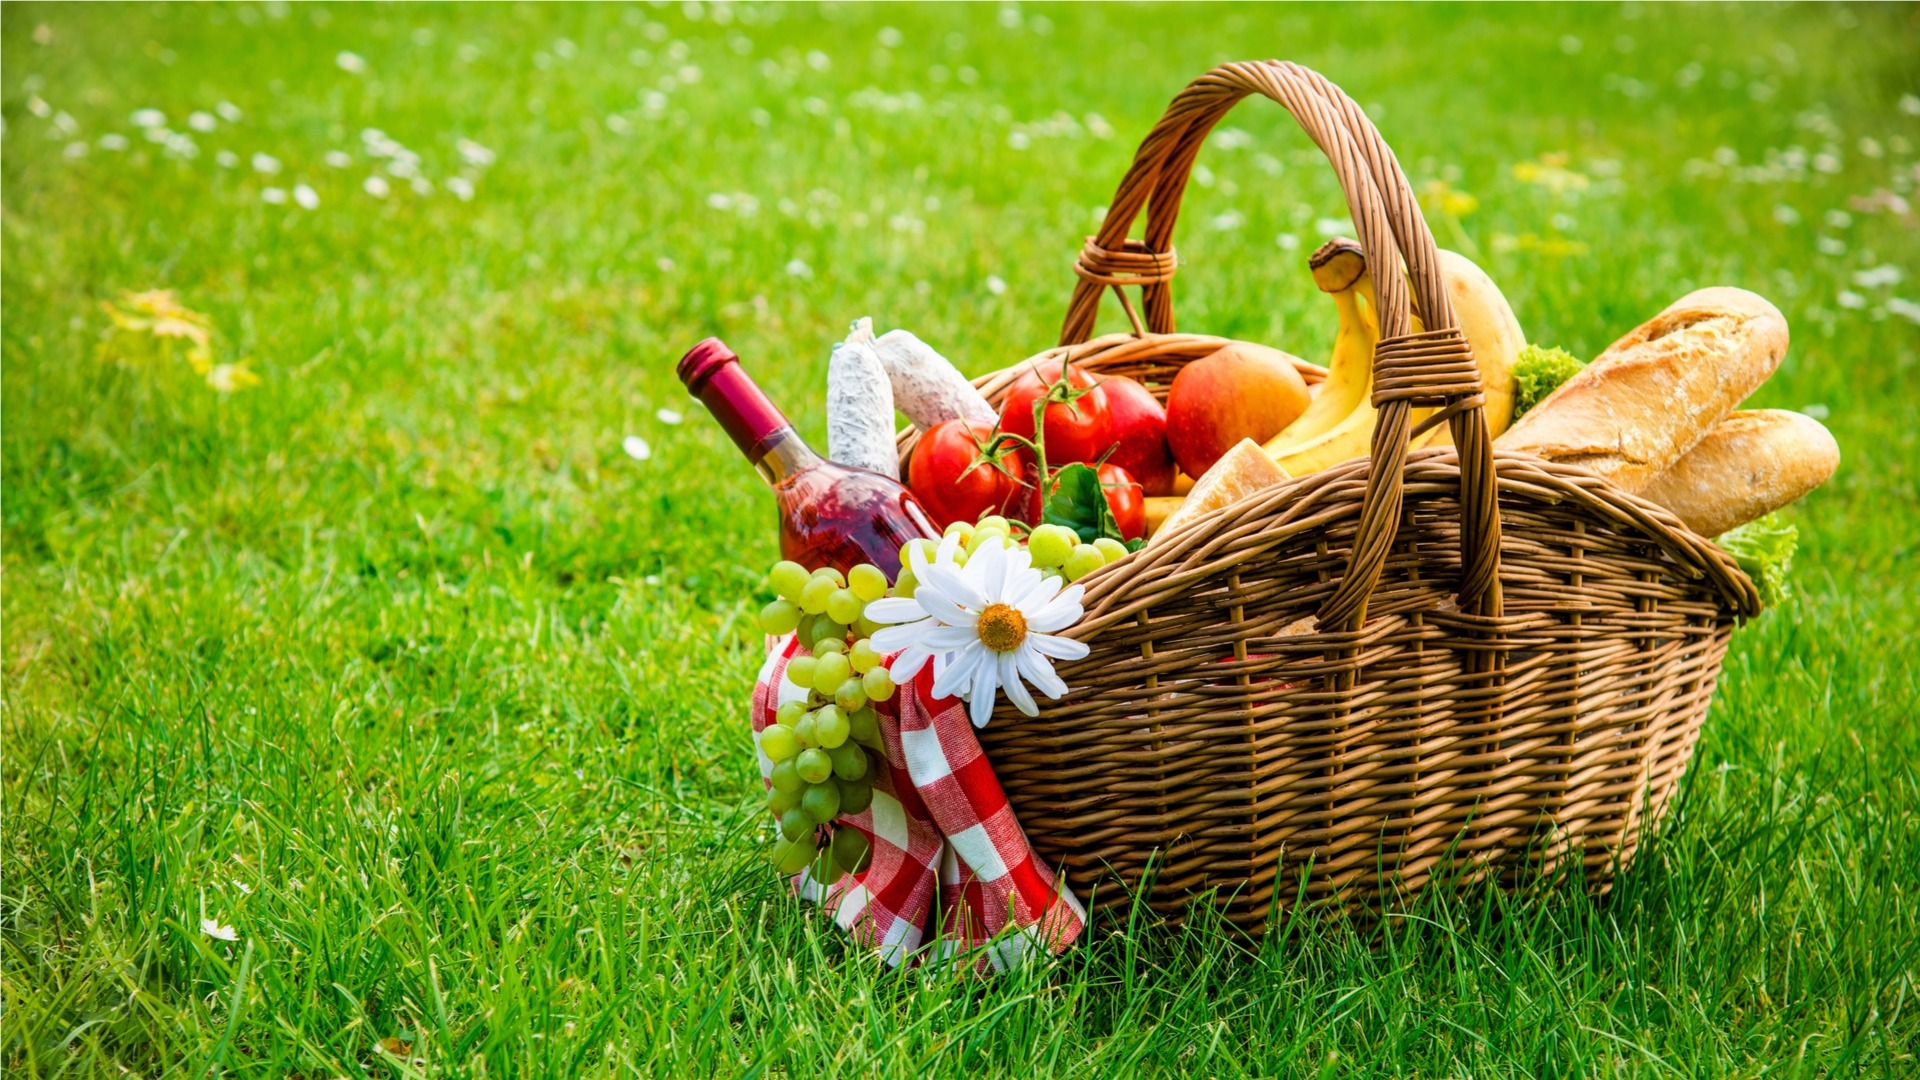 Picnic food basket